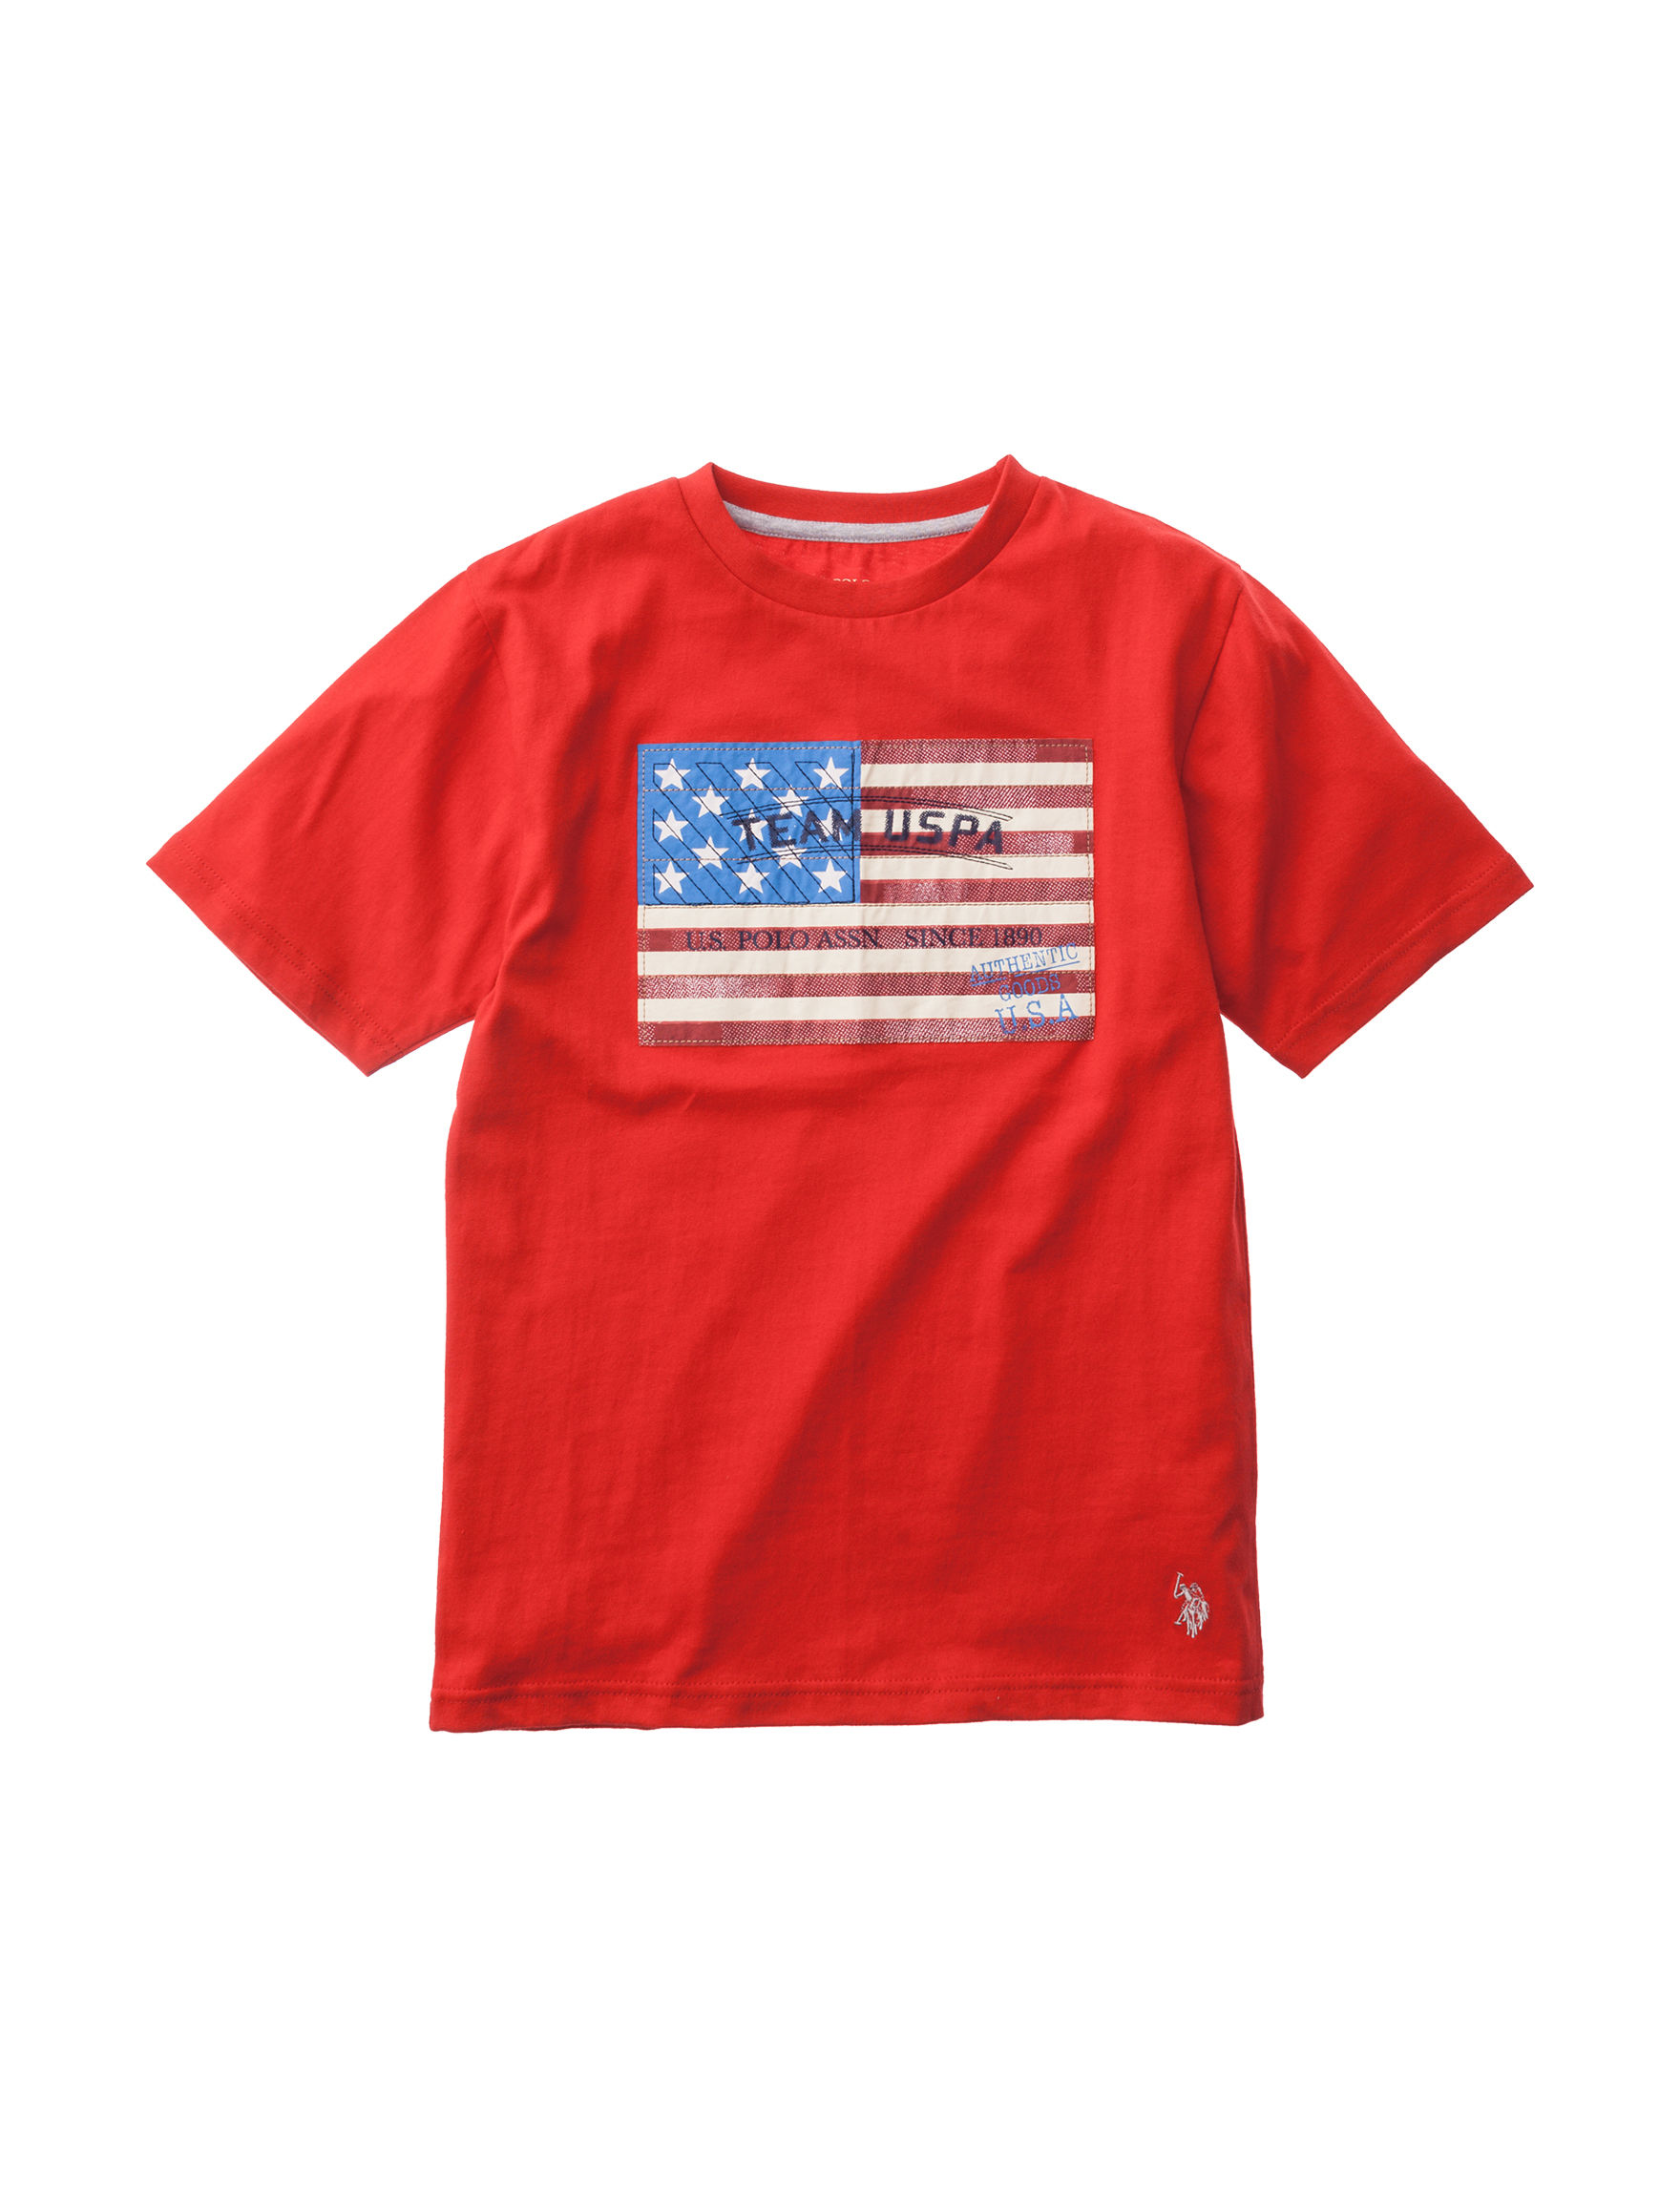 U.S. Polo Assn. Bright Red Tees & Tanks